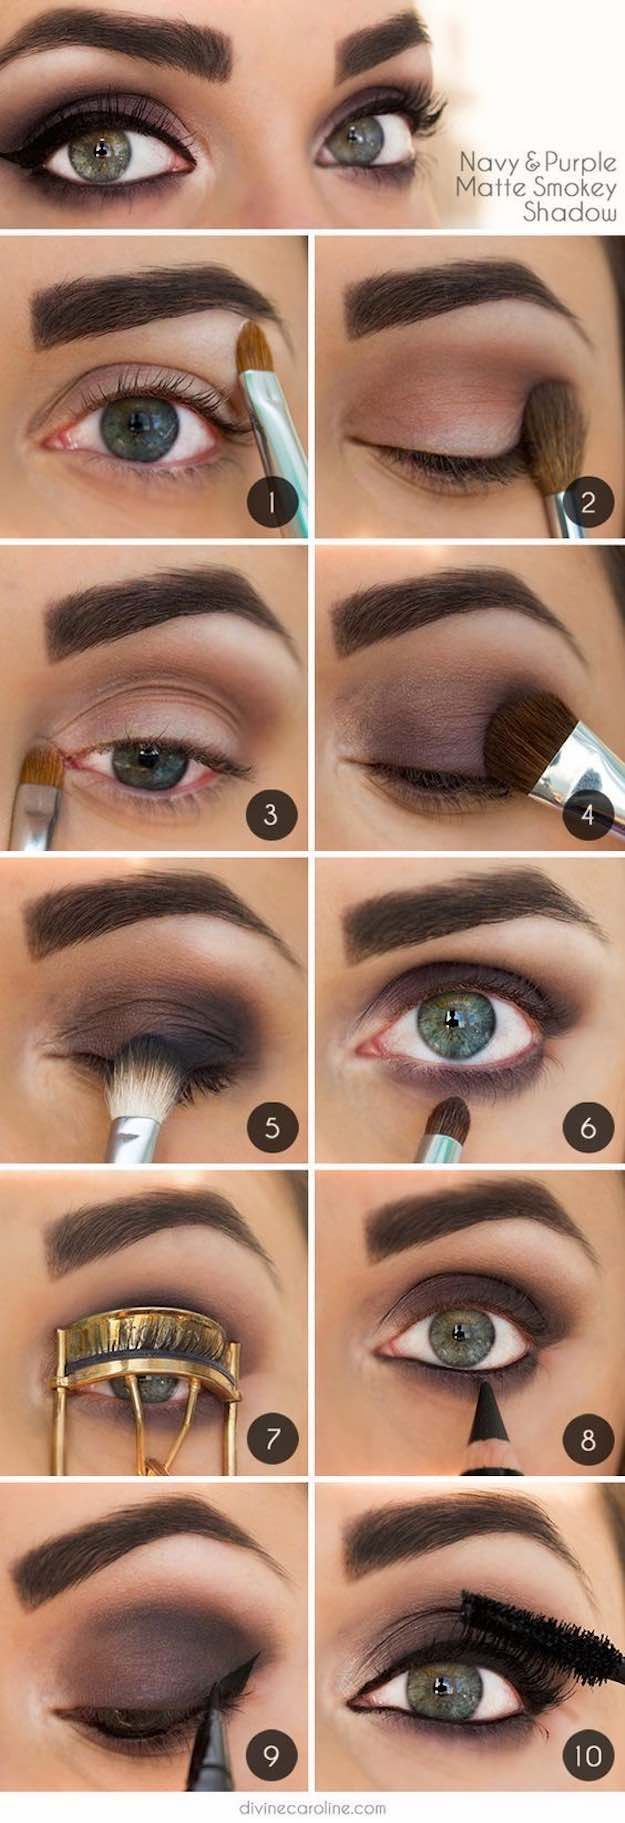 Makeup Tutorials for Green Eyes -Navy & Purple Matte Smokey Shadow -Easy Eye...